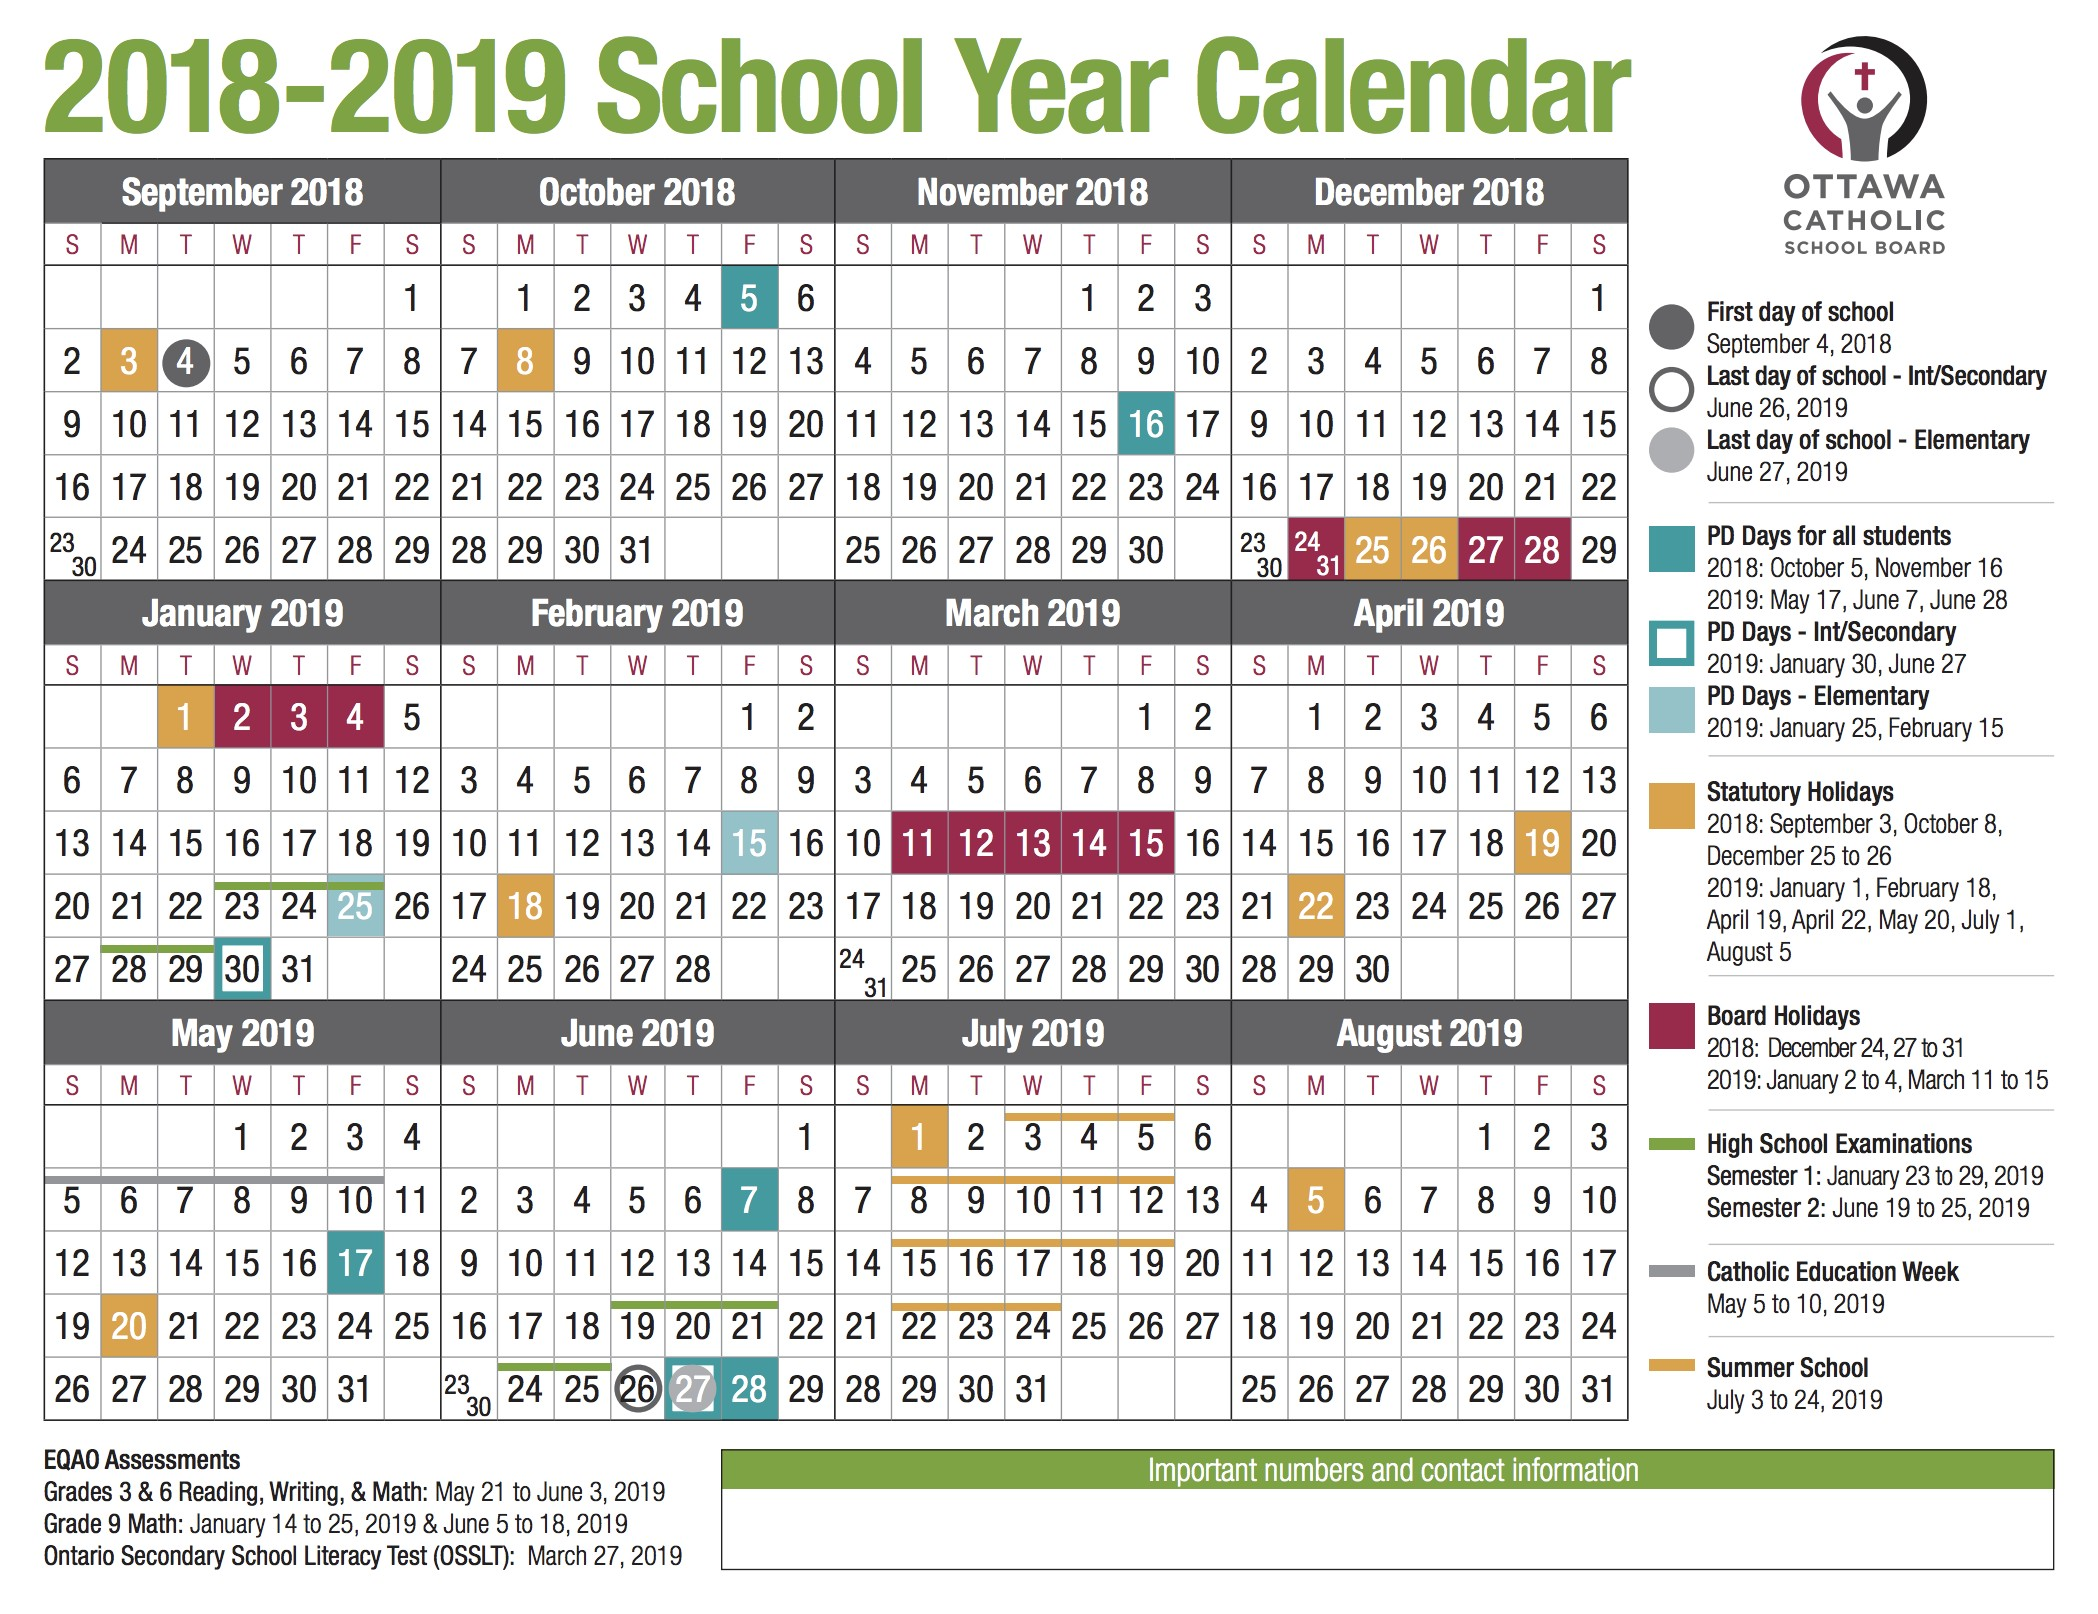 Calendar January to March 2019 Más Arriba-a-fecha School Year Calendar From the Ocsb Of Calendar January to March 2019 Más Caliente Connellsville area Sd